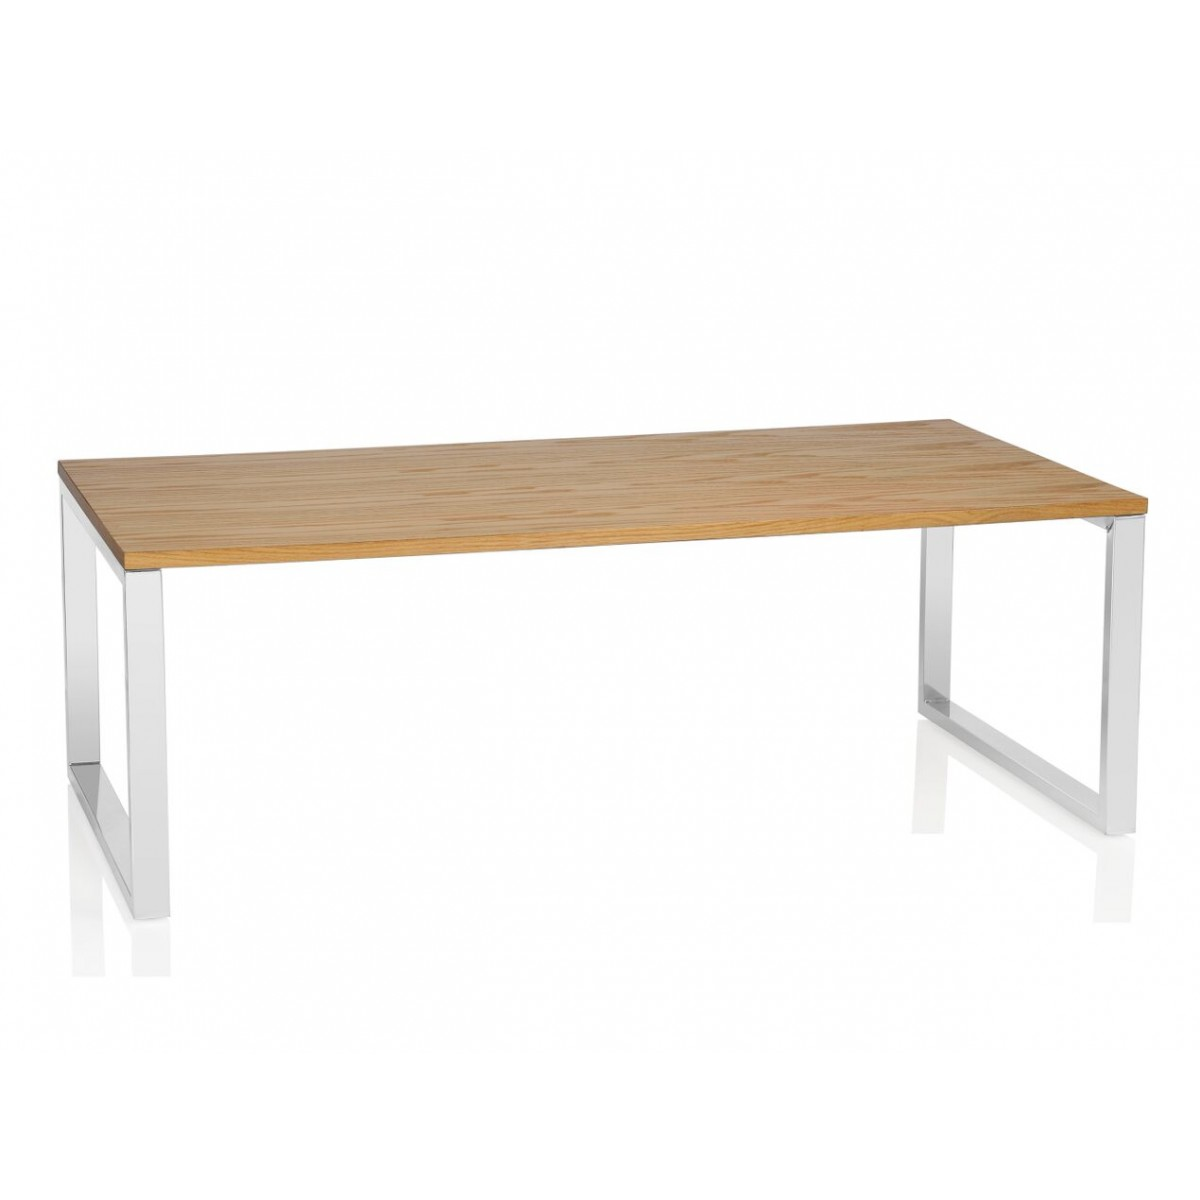 Table basse design rectangulaire 120 cm mooviin - Table basse design rectangulaire ...